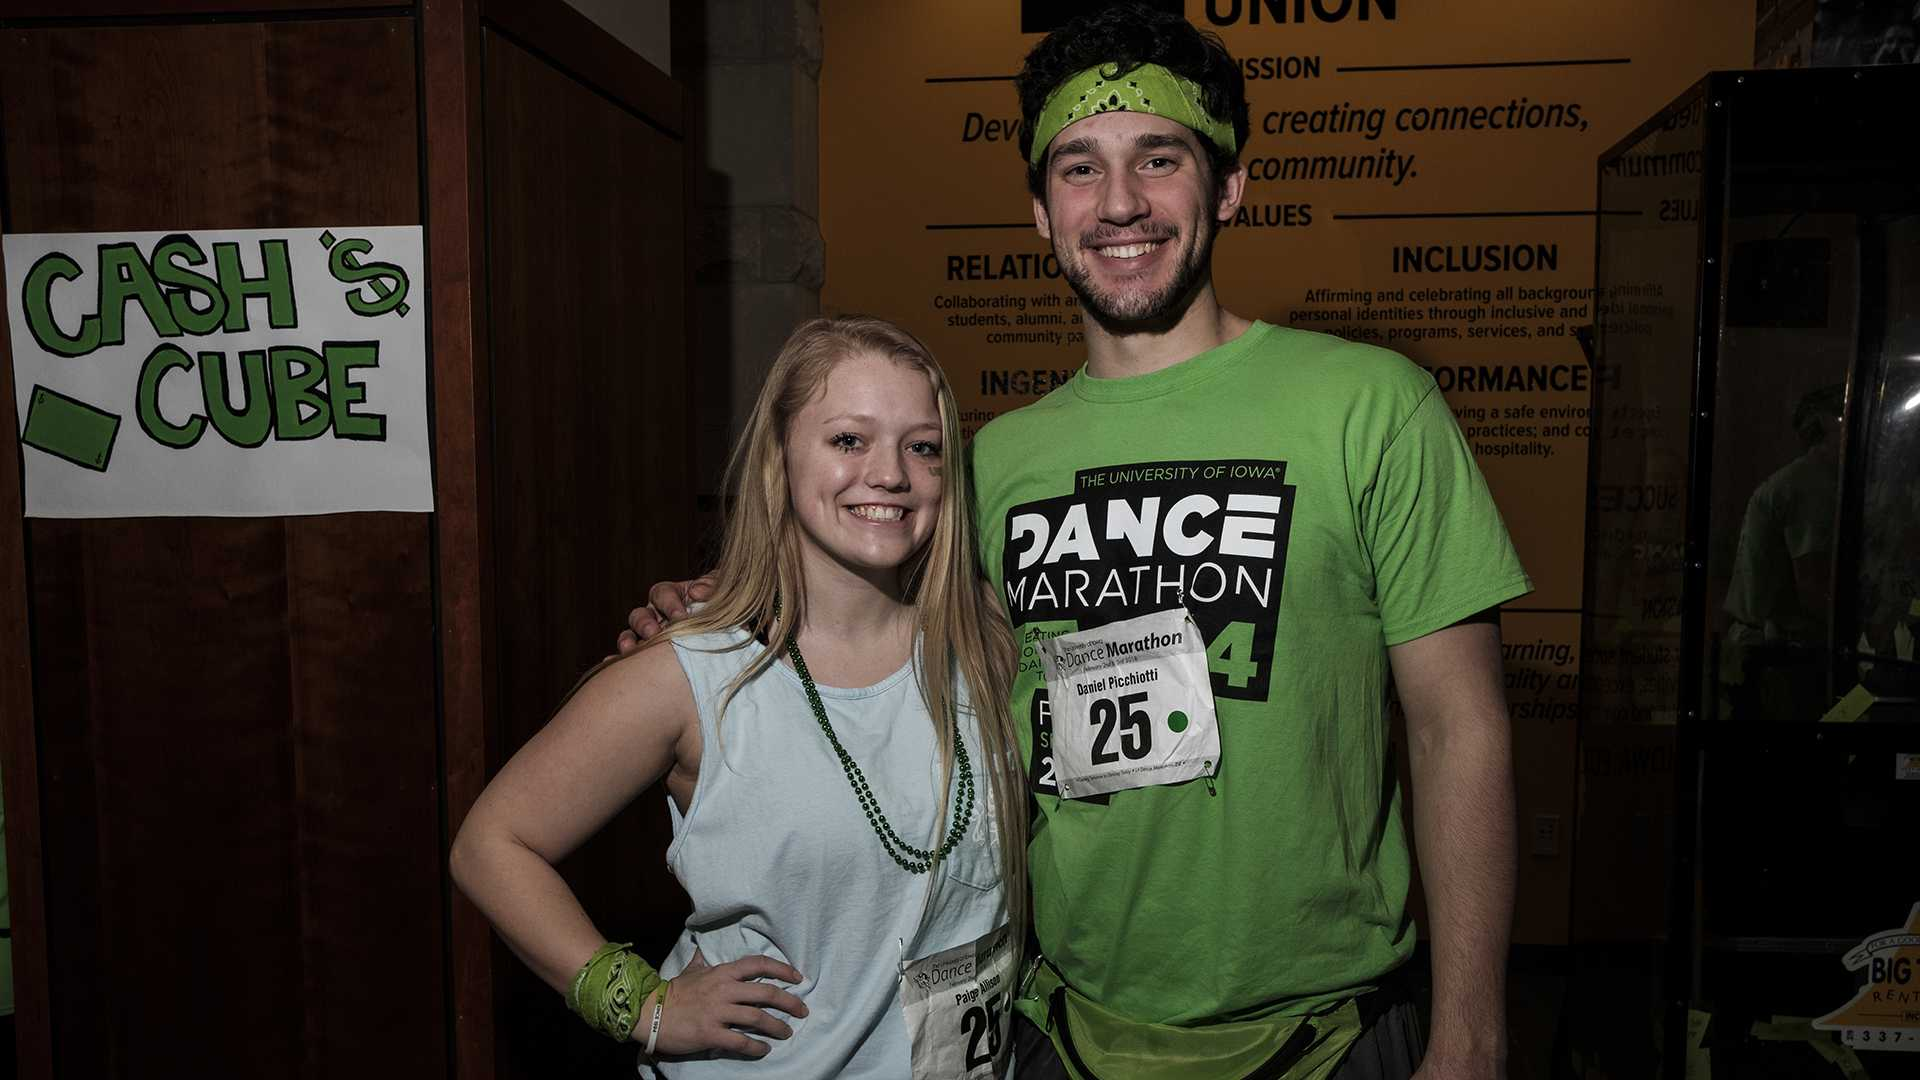 Daniel Picchiotti and Paige Allison pose for a portrait during Dance Marathon at the Iowa Memorial Union on Saturday, Feb. 3, 2018. (Nick Rohlman/The Daily Iowan)